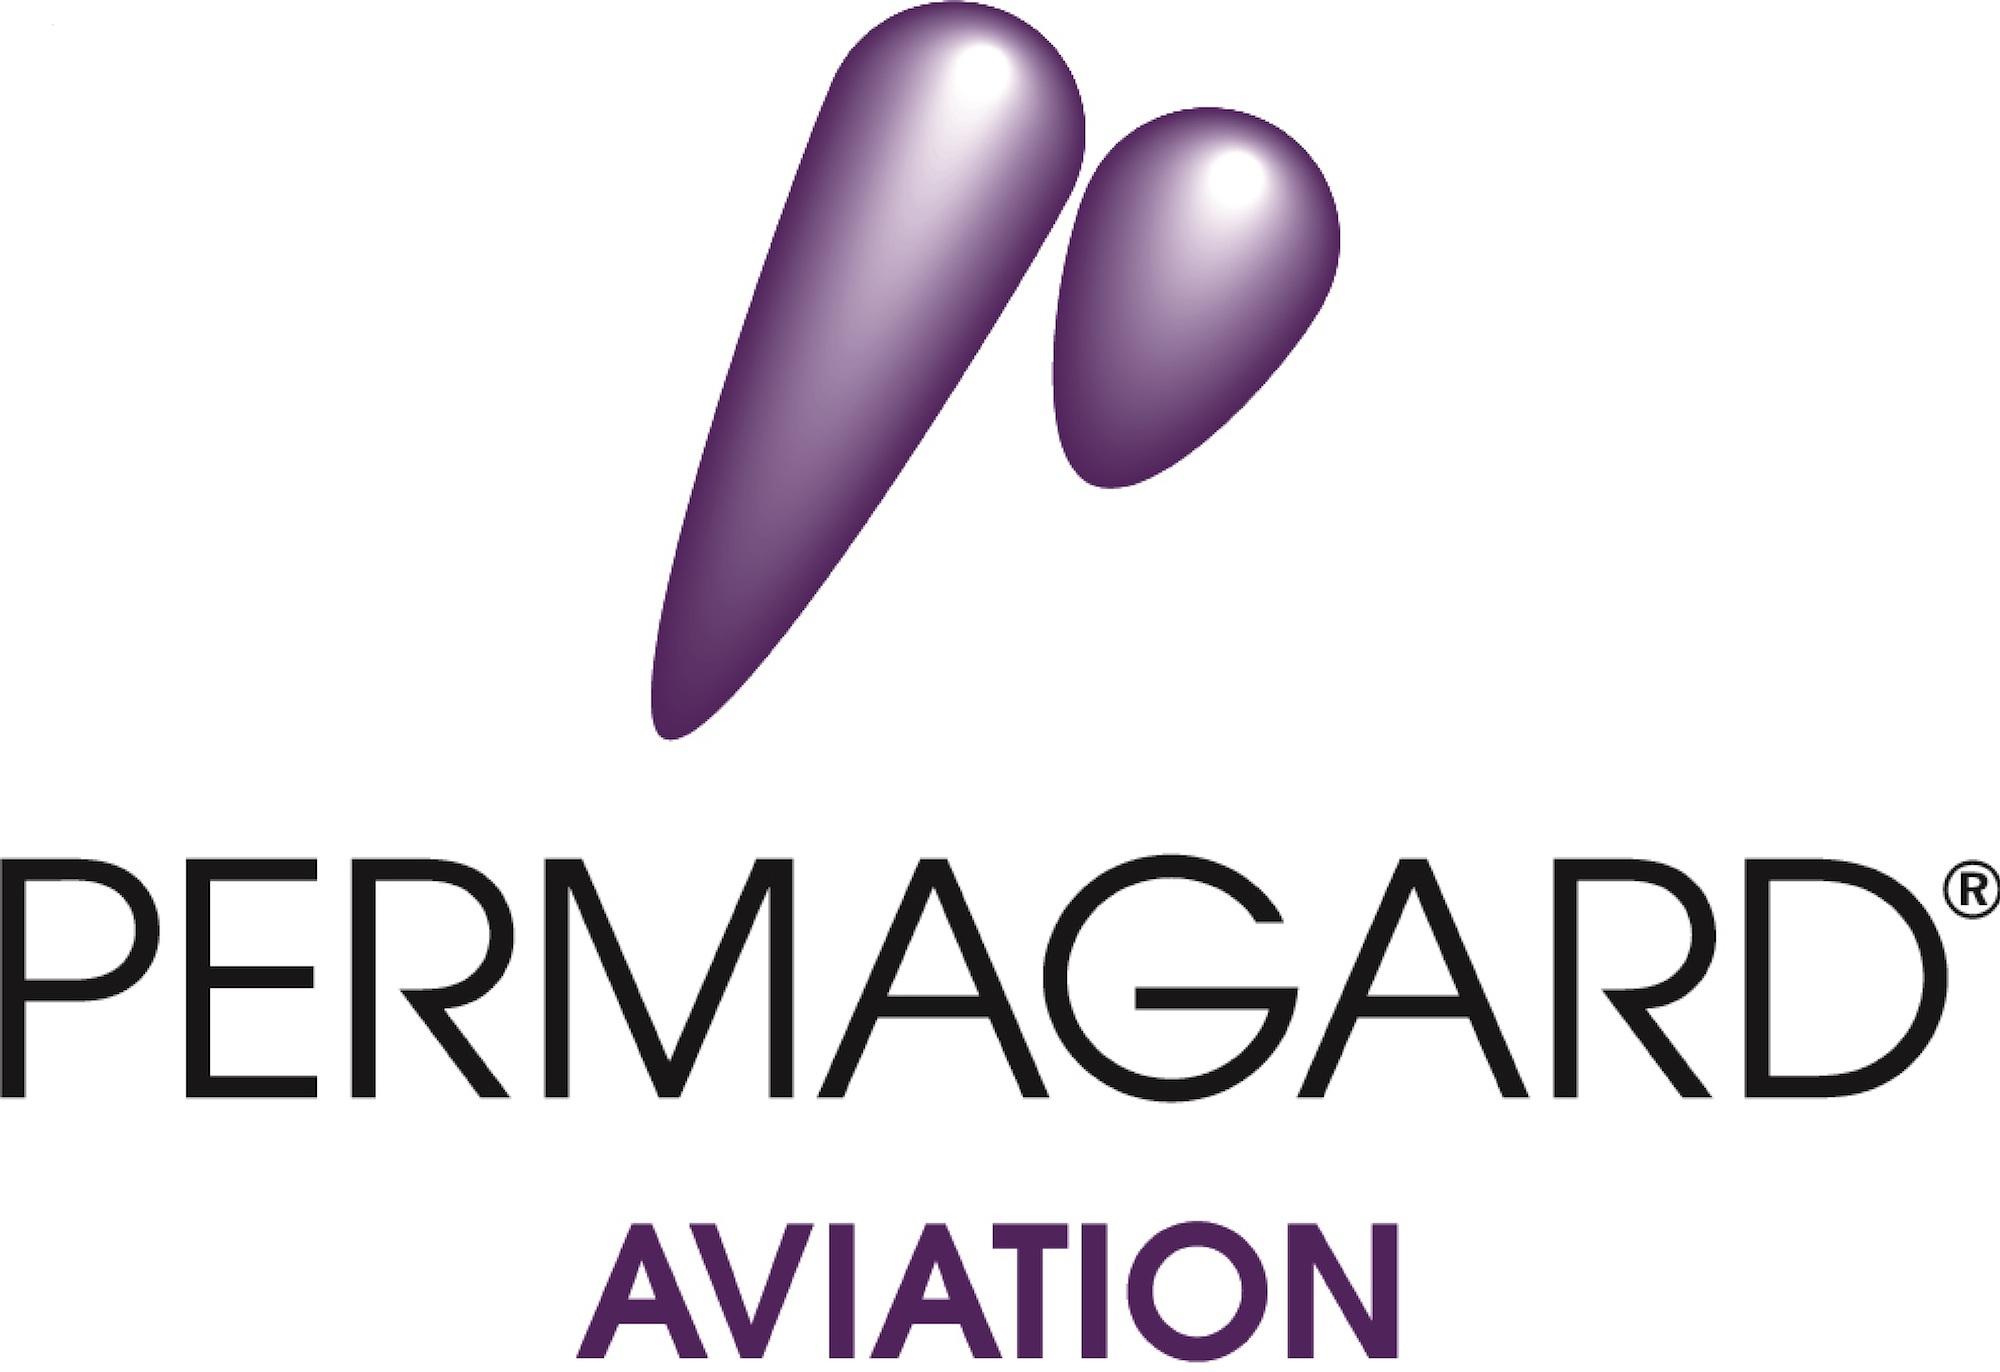 Permagard Aviation - Aircraft Presentation and Hygiene Specialists. Interior and Exterior Cleaning, Paint Protection, Disinsection, Antimicrobial, Software.